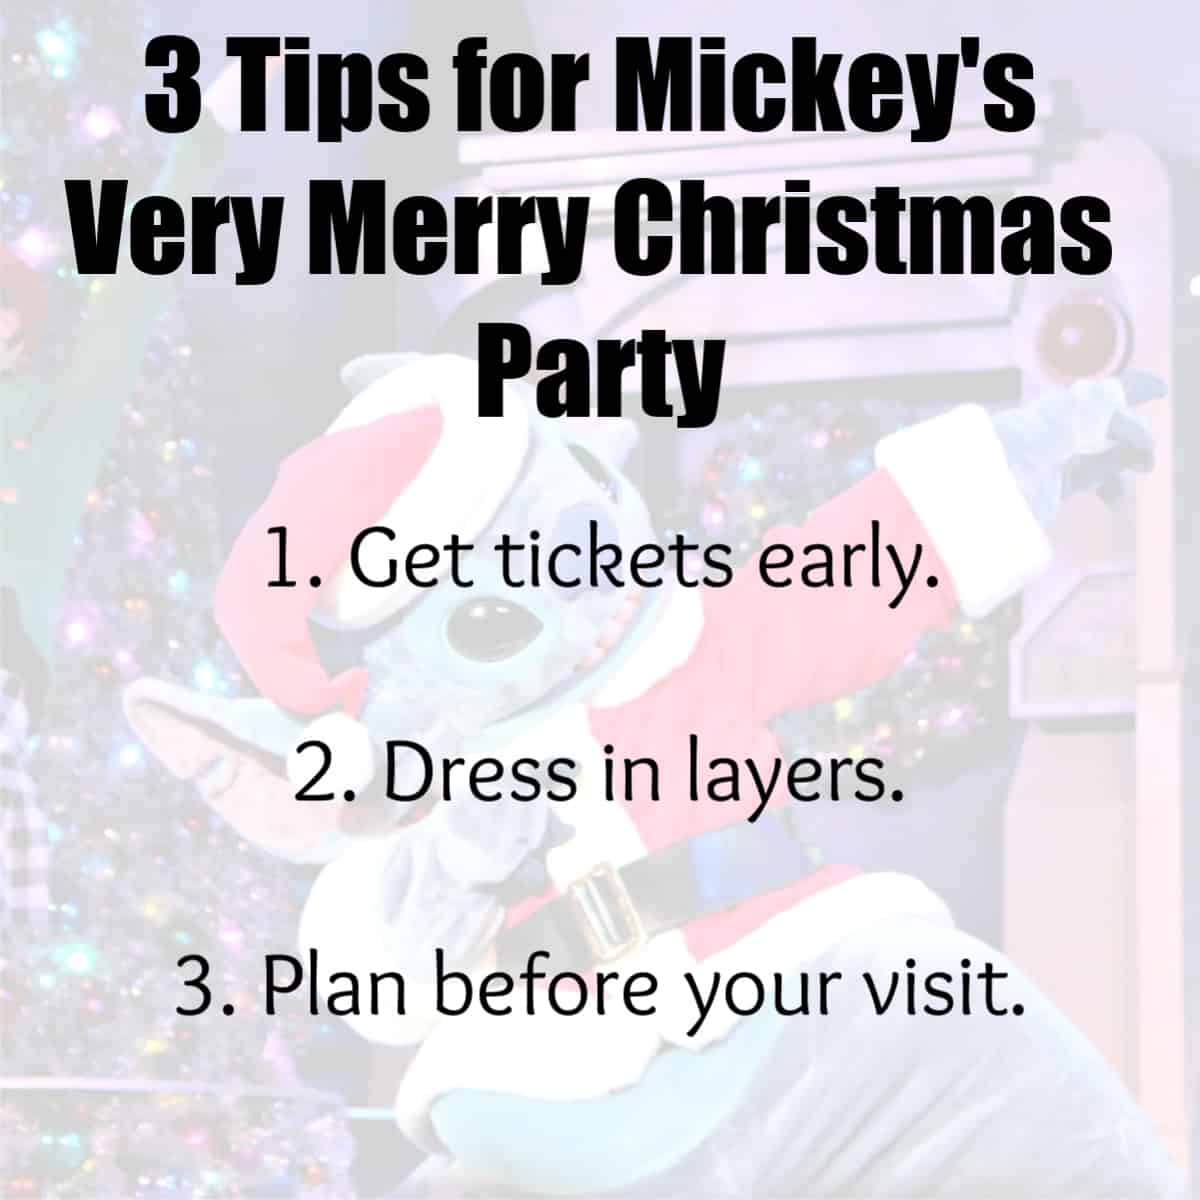 3 tips for Mickey's Very Merry Christmas Party